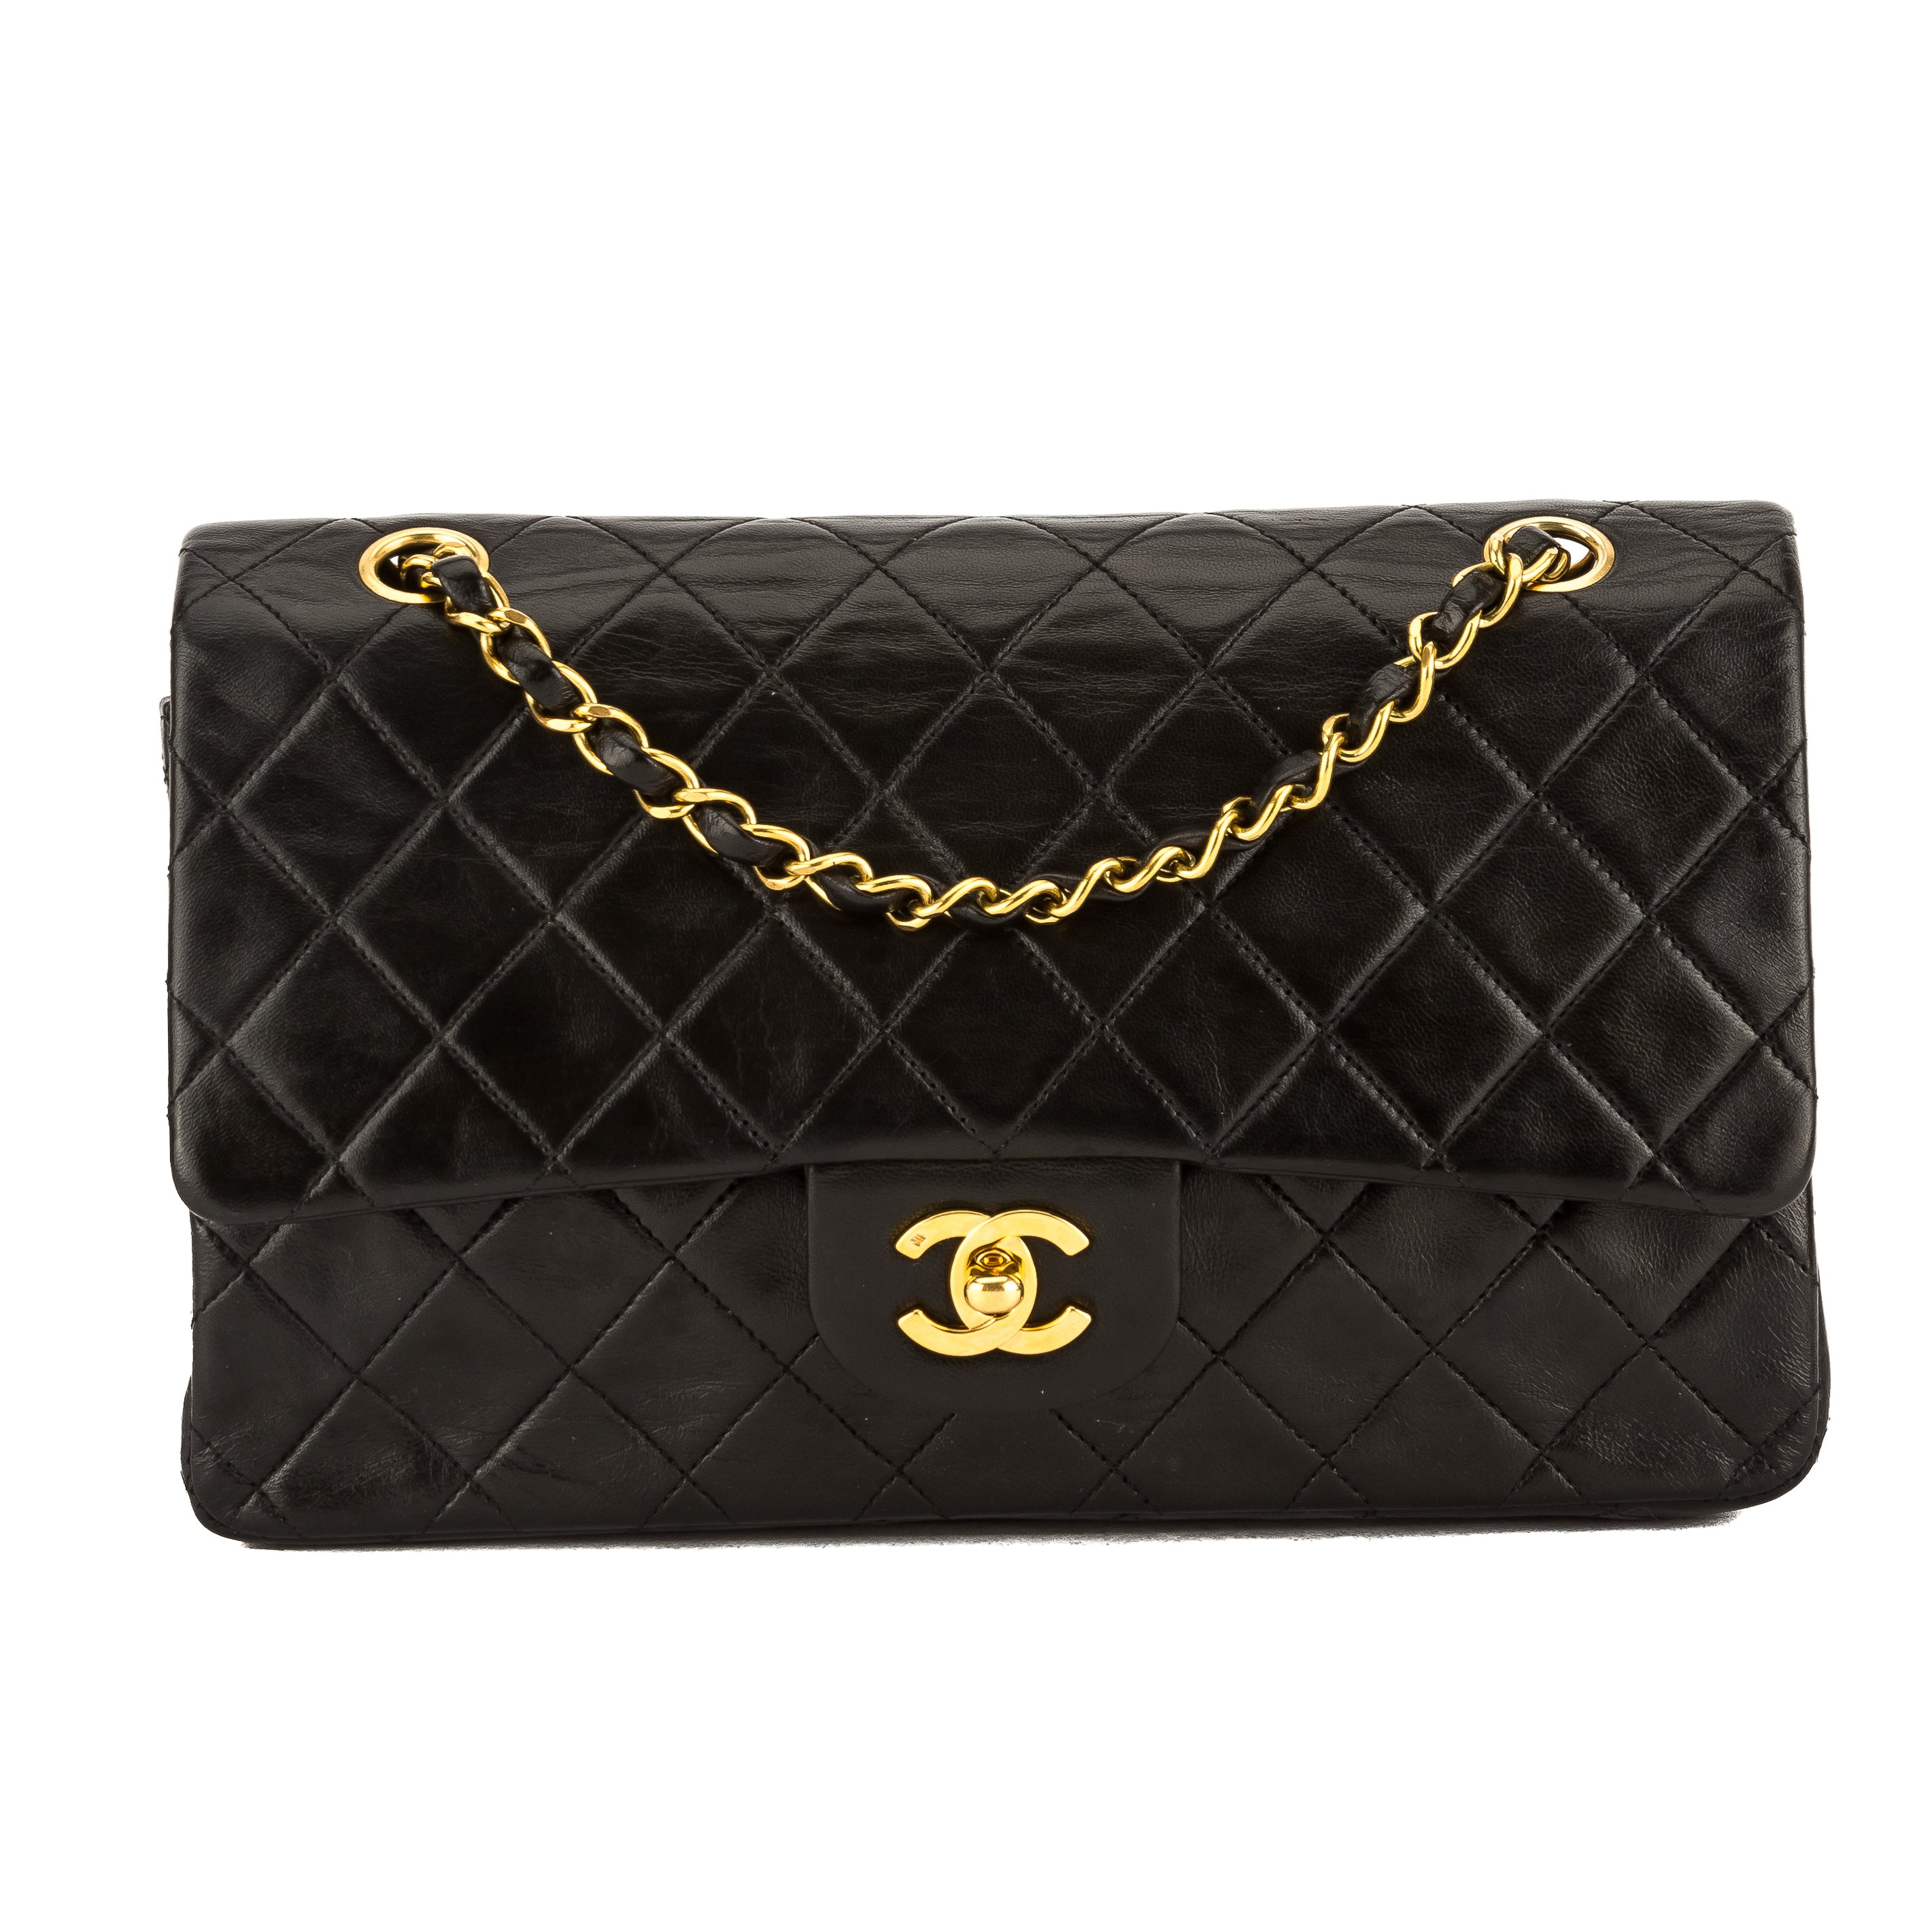 1742bf0daac694 Chanel Black Quilted Lambskin Leather 2.55 Medium Double Flap Bag Pre Owned